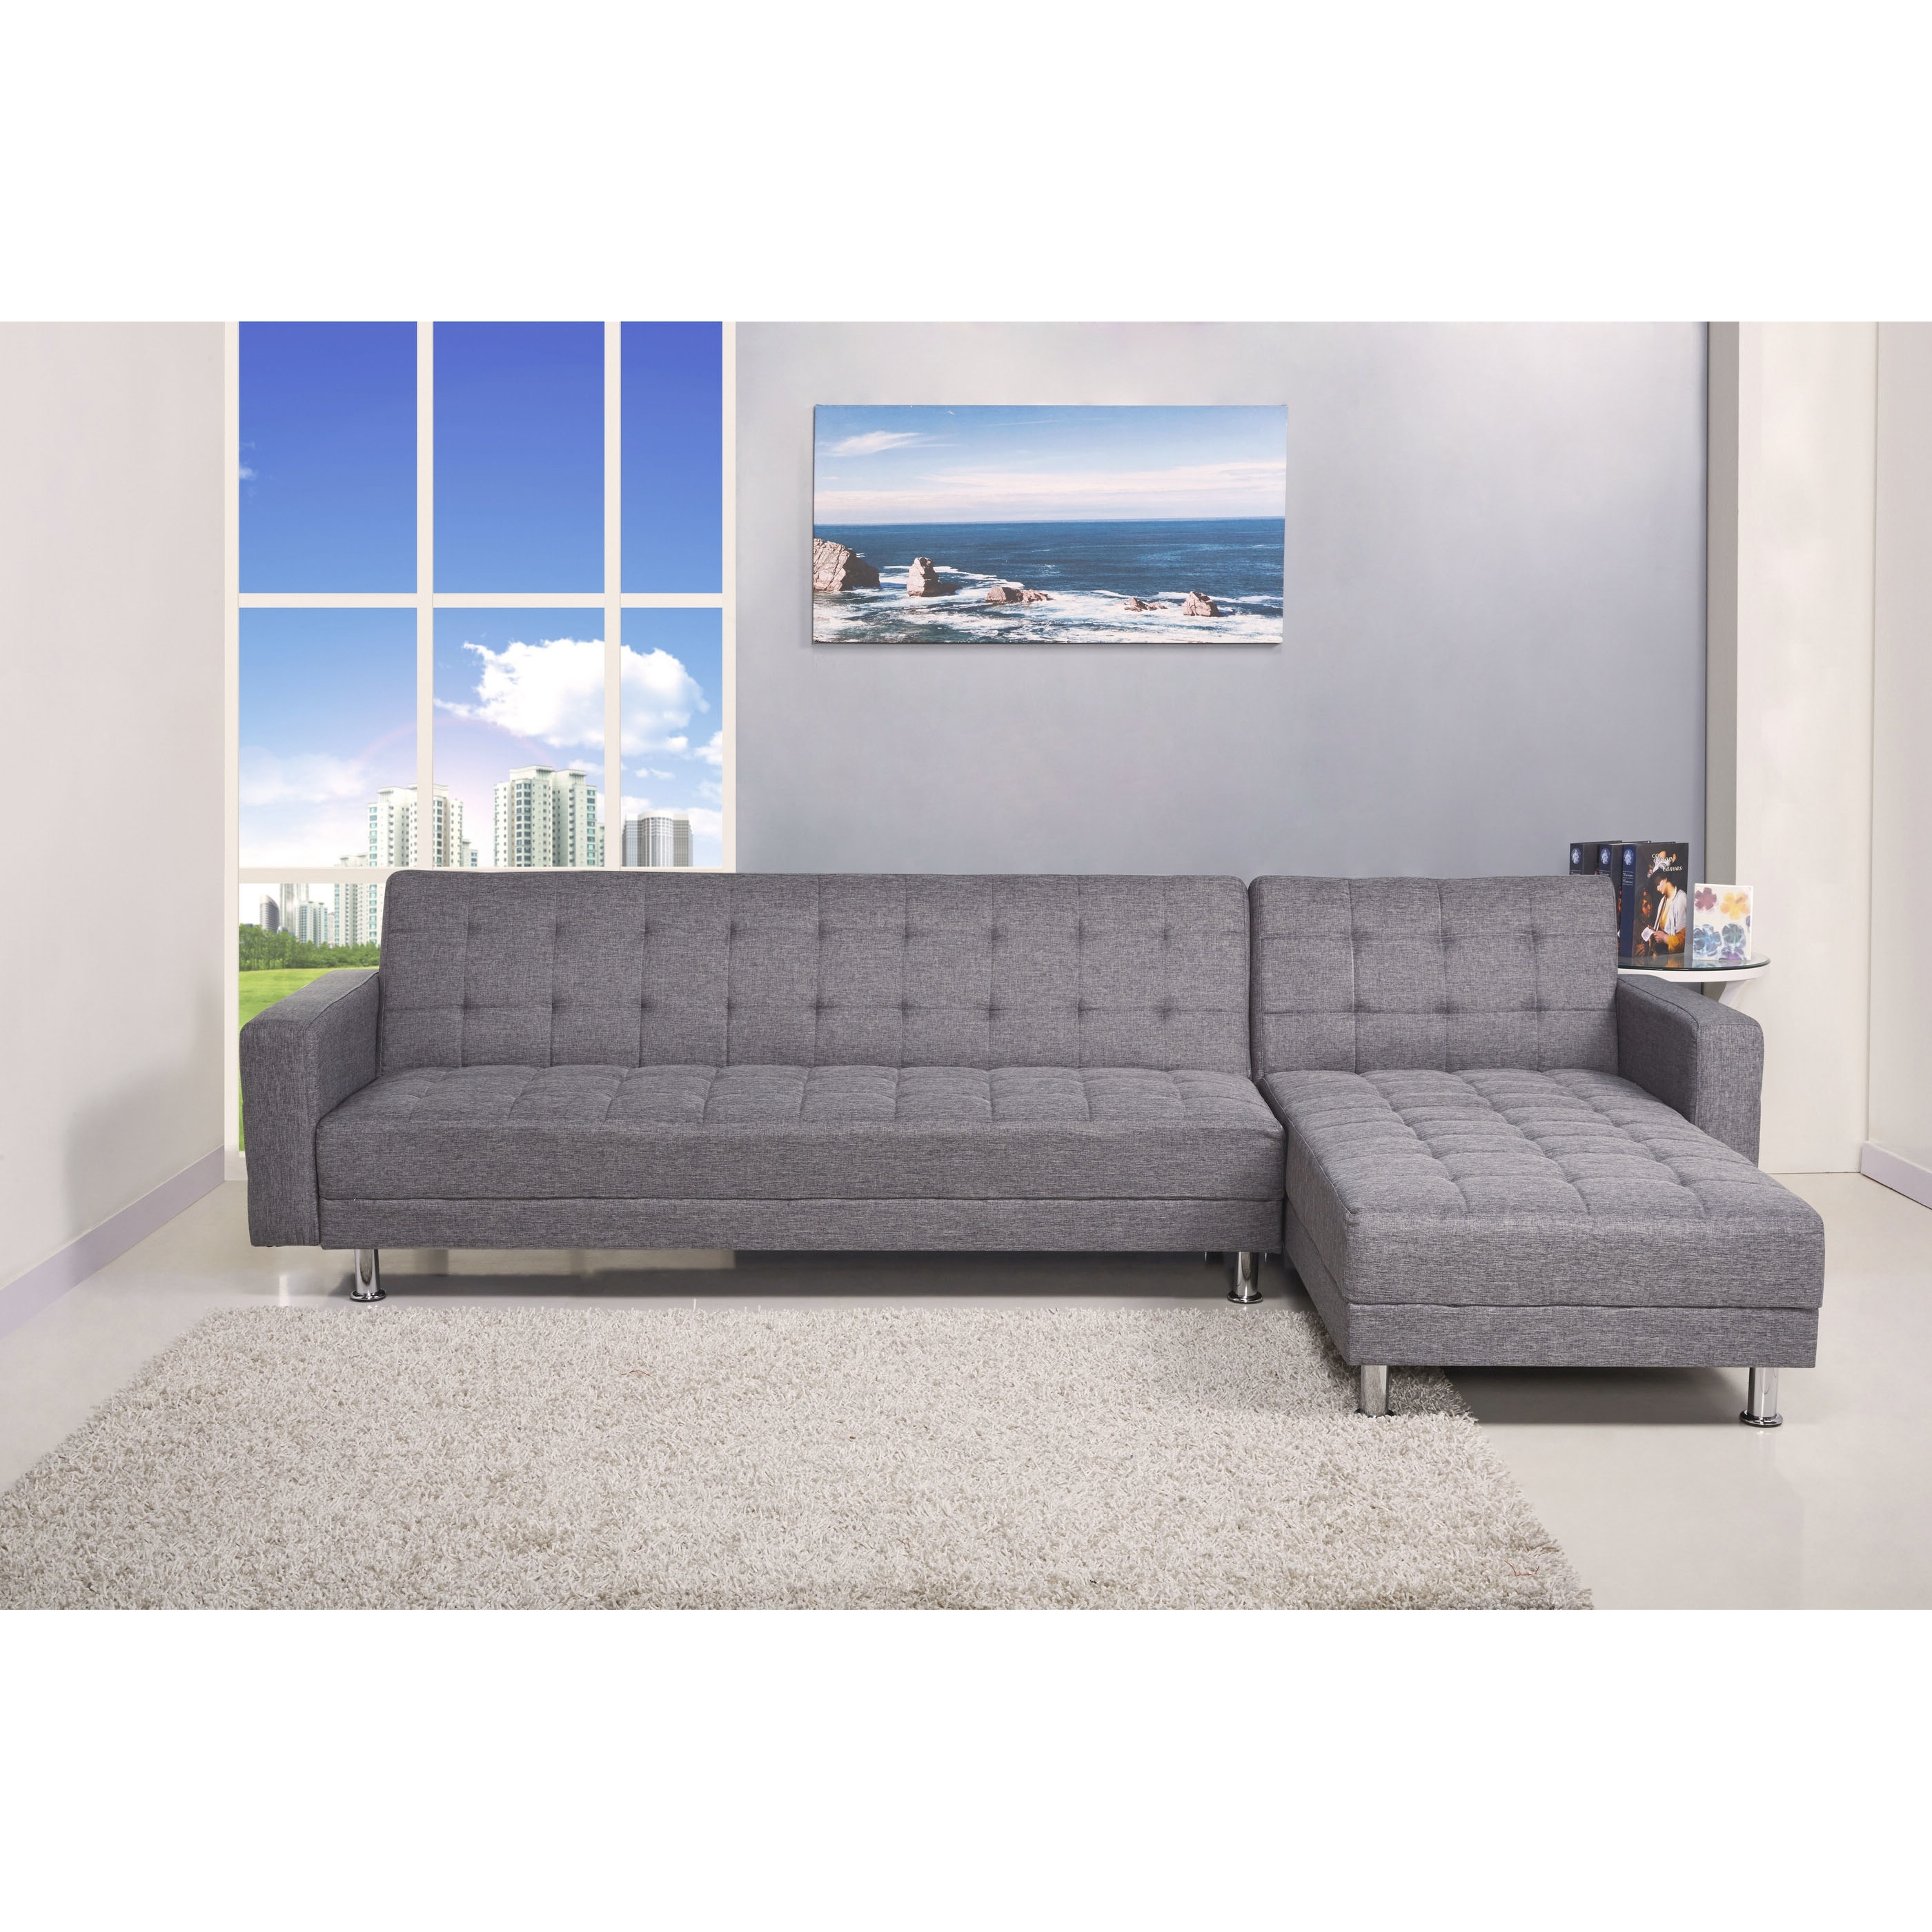 Ikea Sectional Sleeper Sofas With Best And Newest Furniture & Rug: Sectional Sleeper Sofa (Gallery 13 of 20)